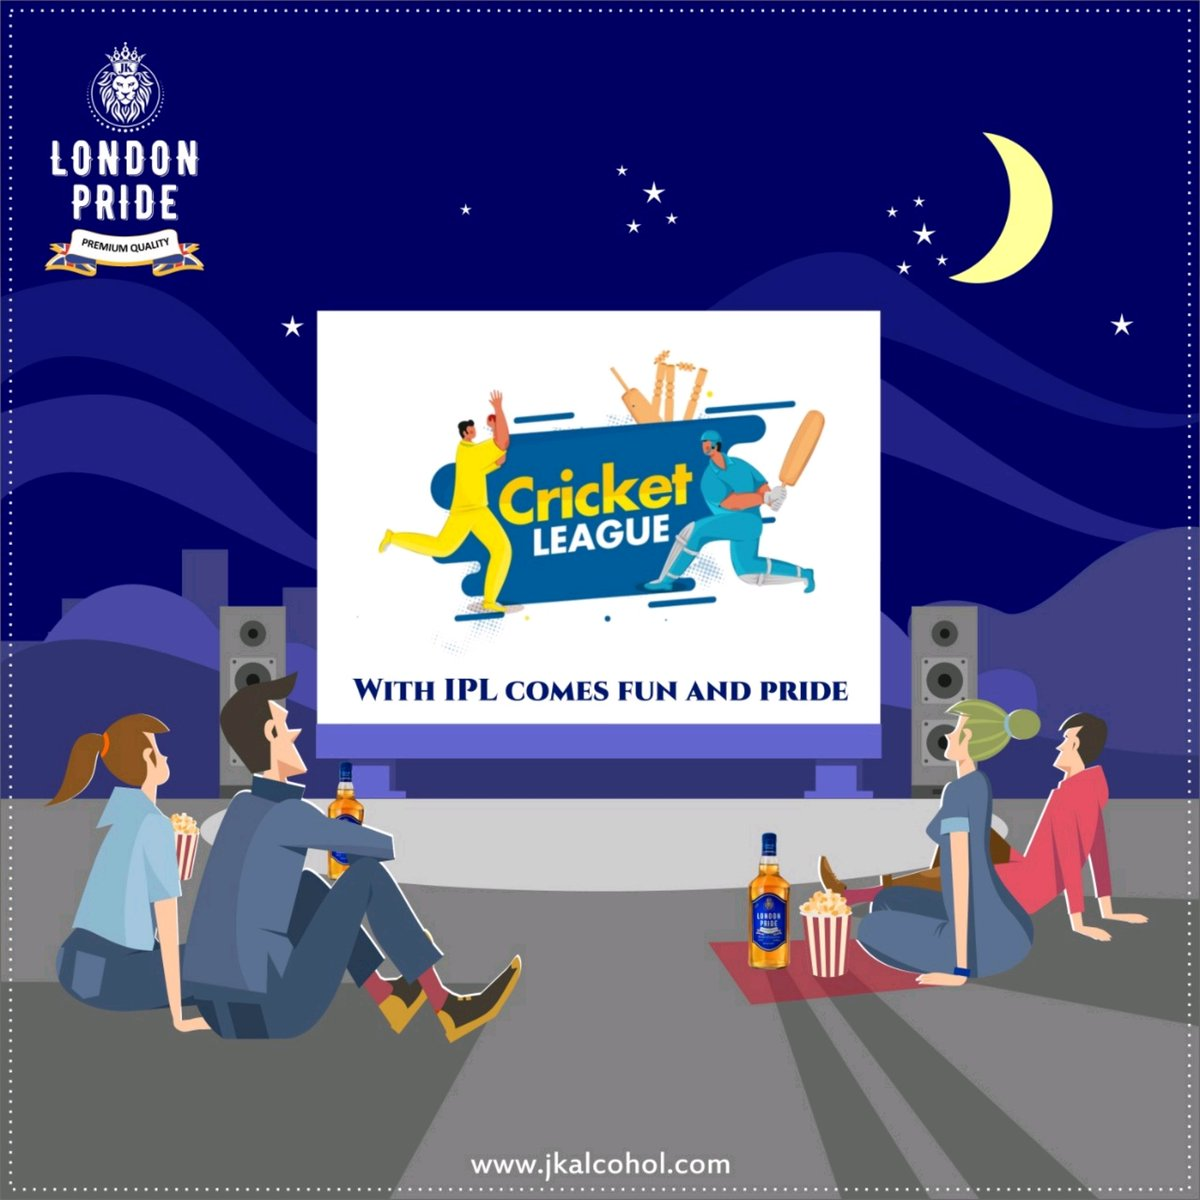 Have you been missing some excitement from life? Well, miss it no more as IPL is starting! So, get ready for it by getting London Pride Premium Whisky! #IPL #IPL2020 #IPLFever #cricketlover #cricket #cricketlove #cricketfever #jkalcohol #Jkgroup #JkEnterprises #londonpride https://t.co/UUeHrpRWwR